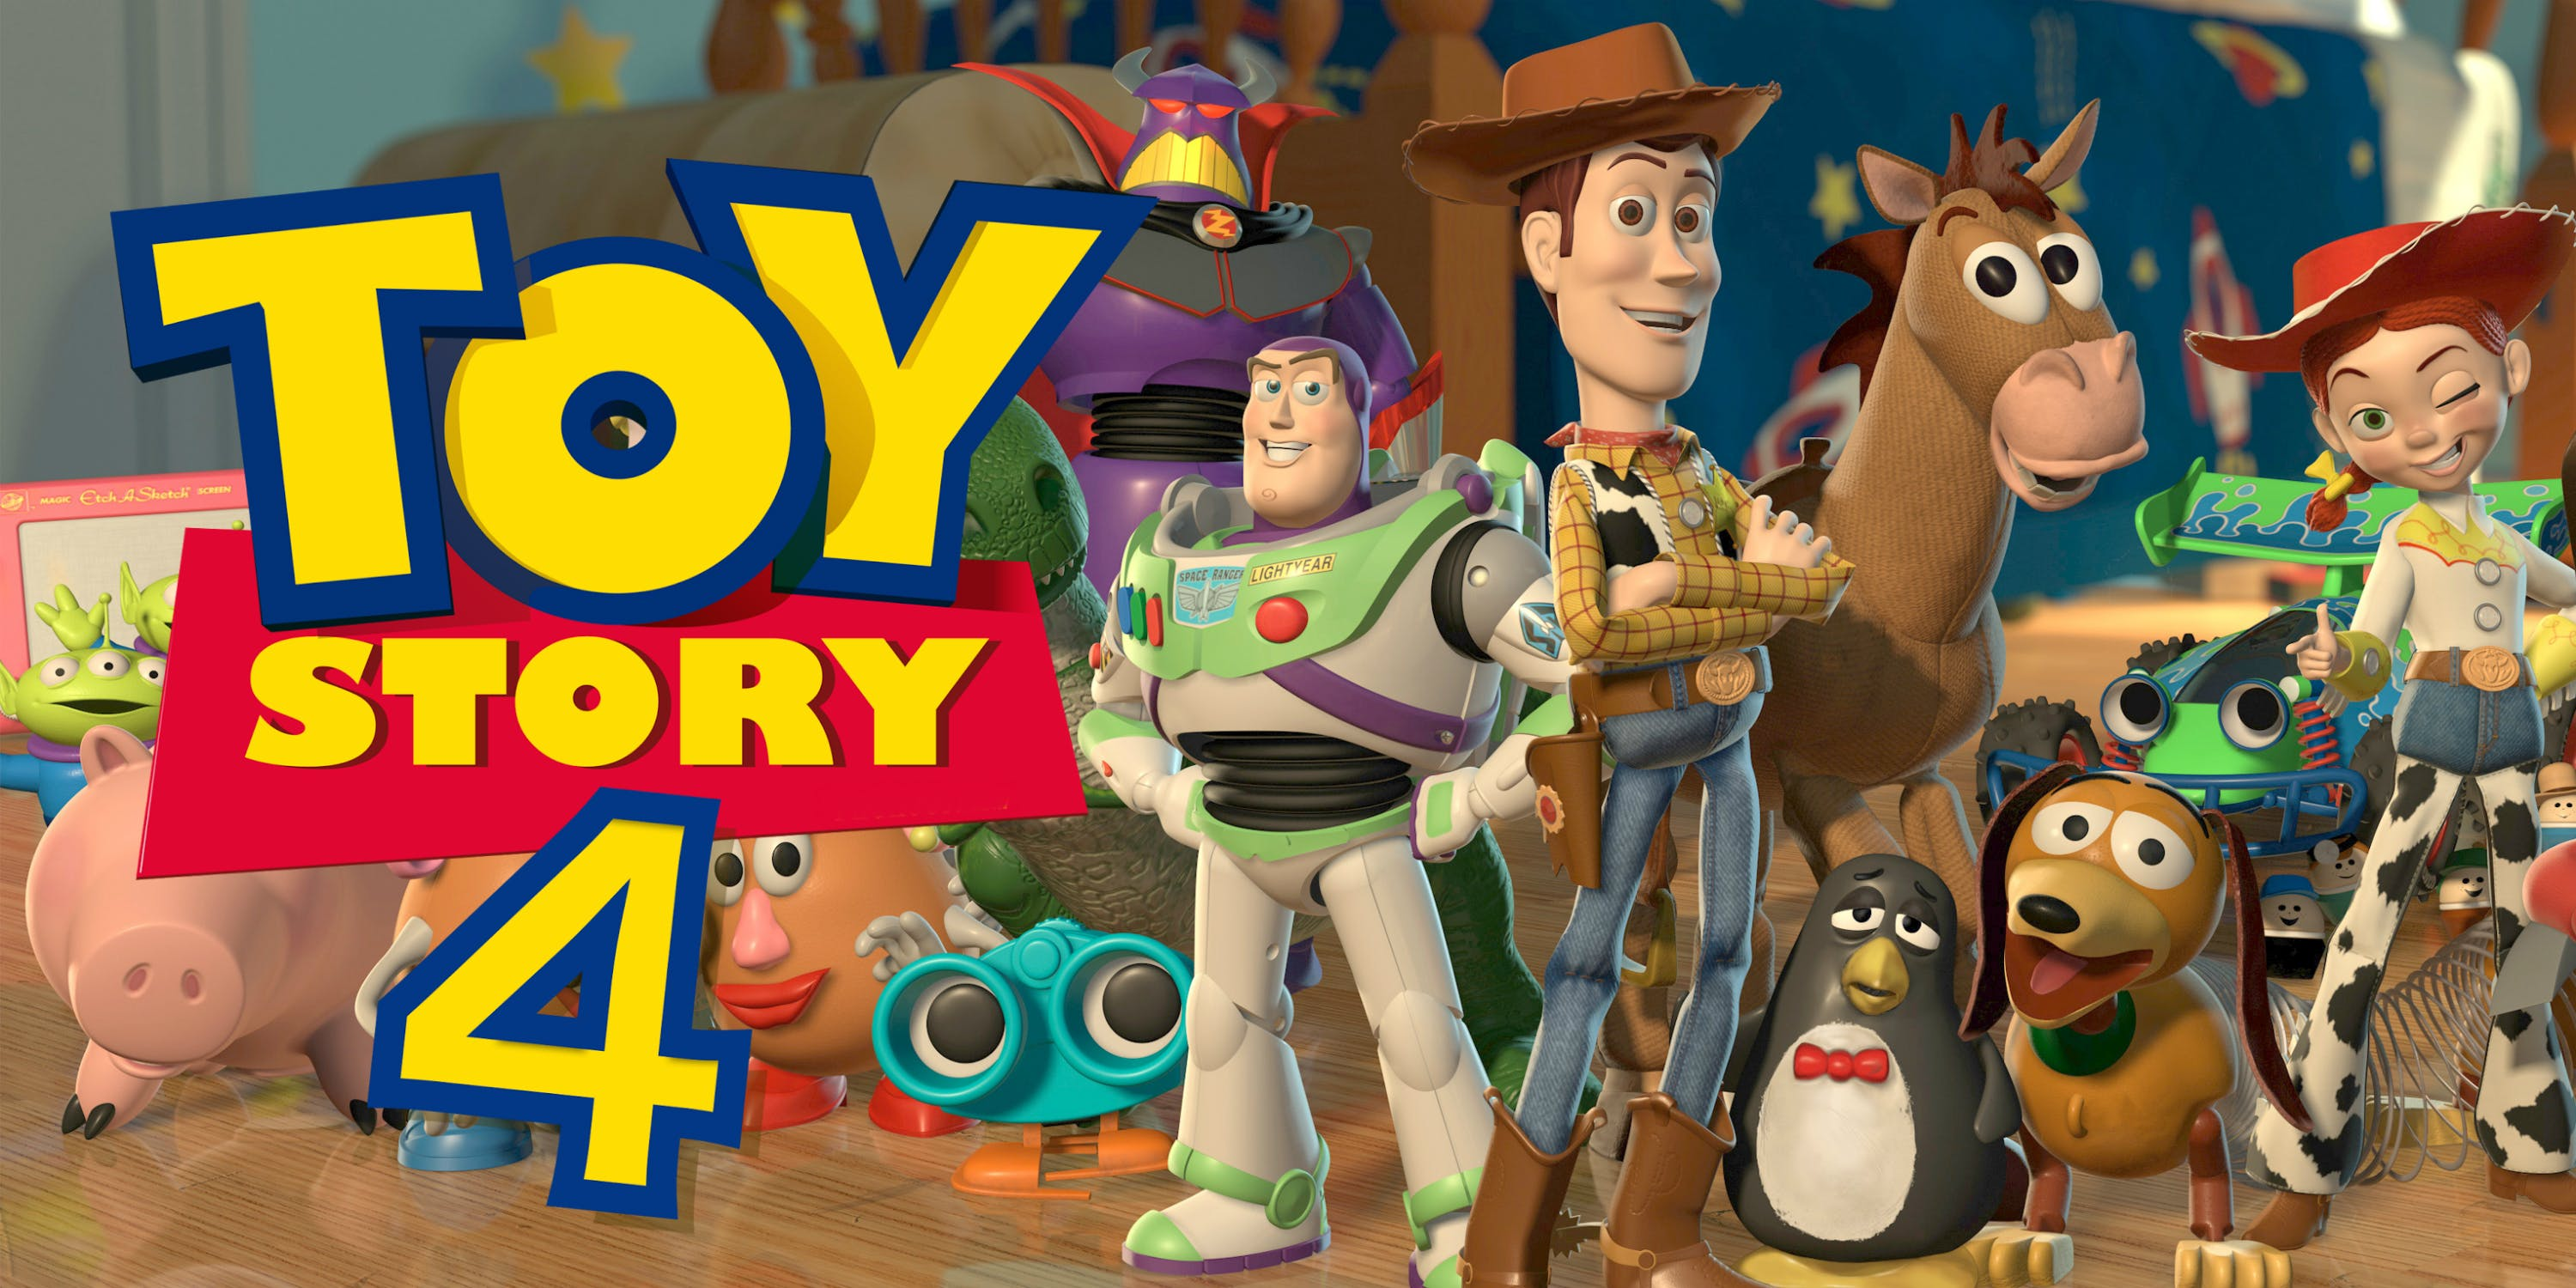 TOY STORY 4 | Novo teaser trailer destaca novos personagens que tiram sarro de Buzz Lightyear!